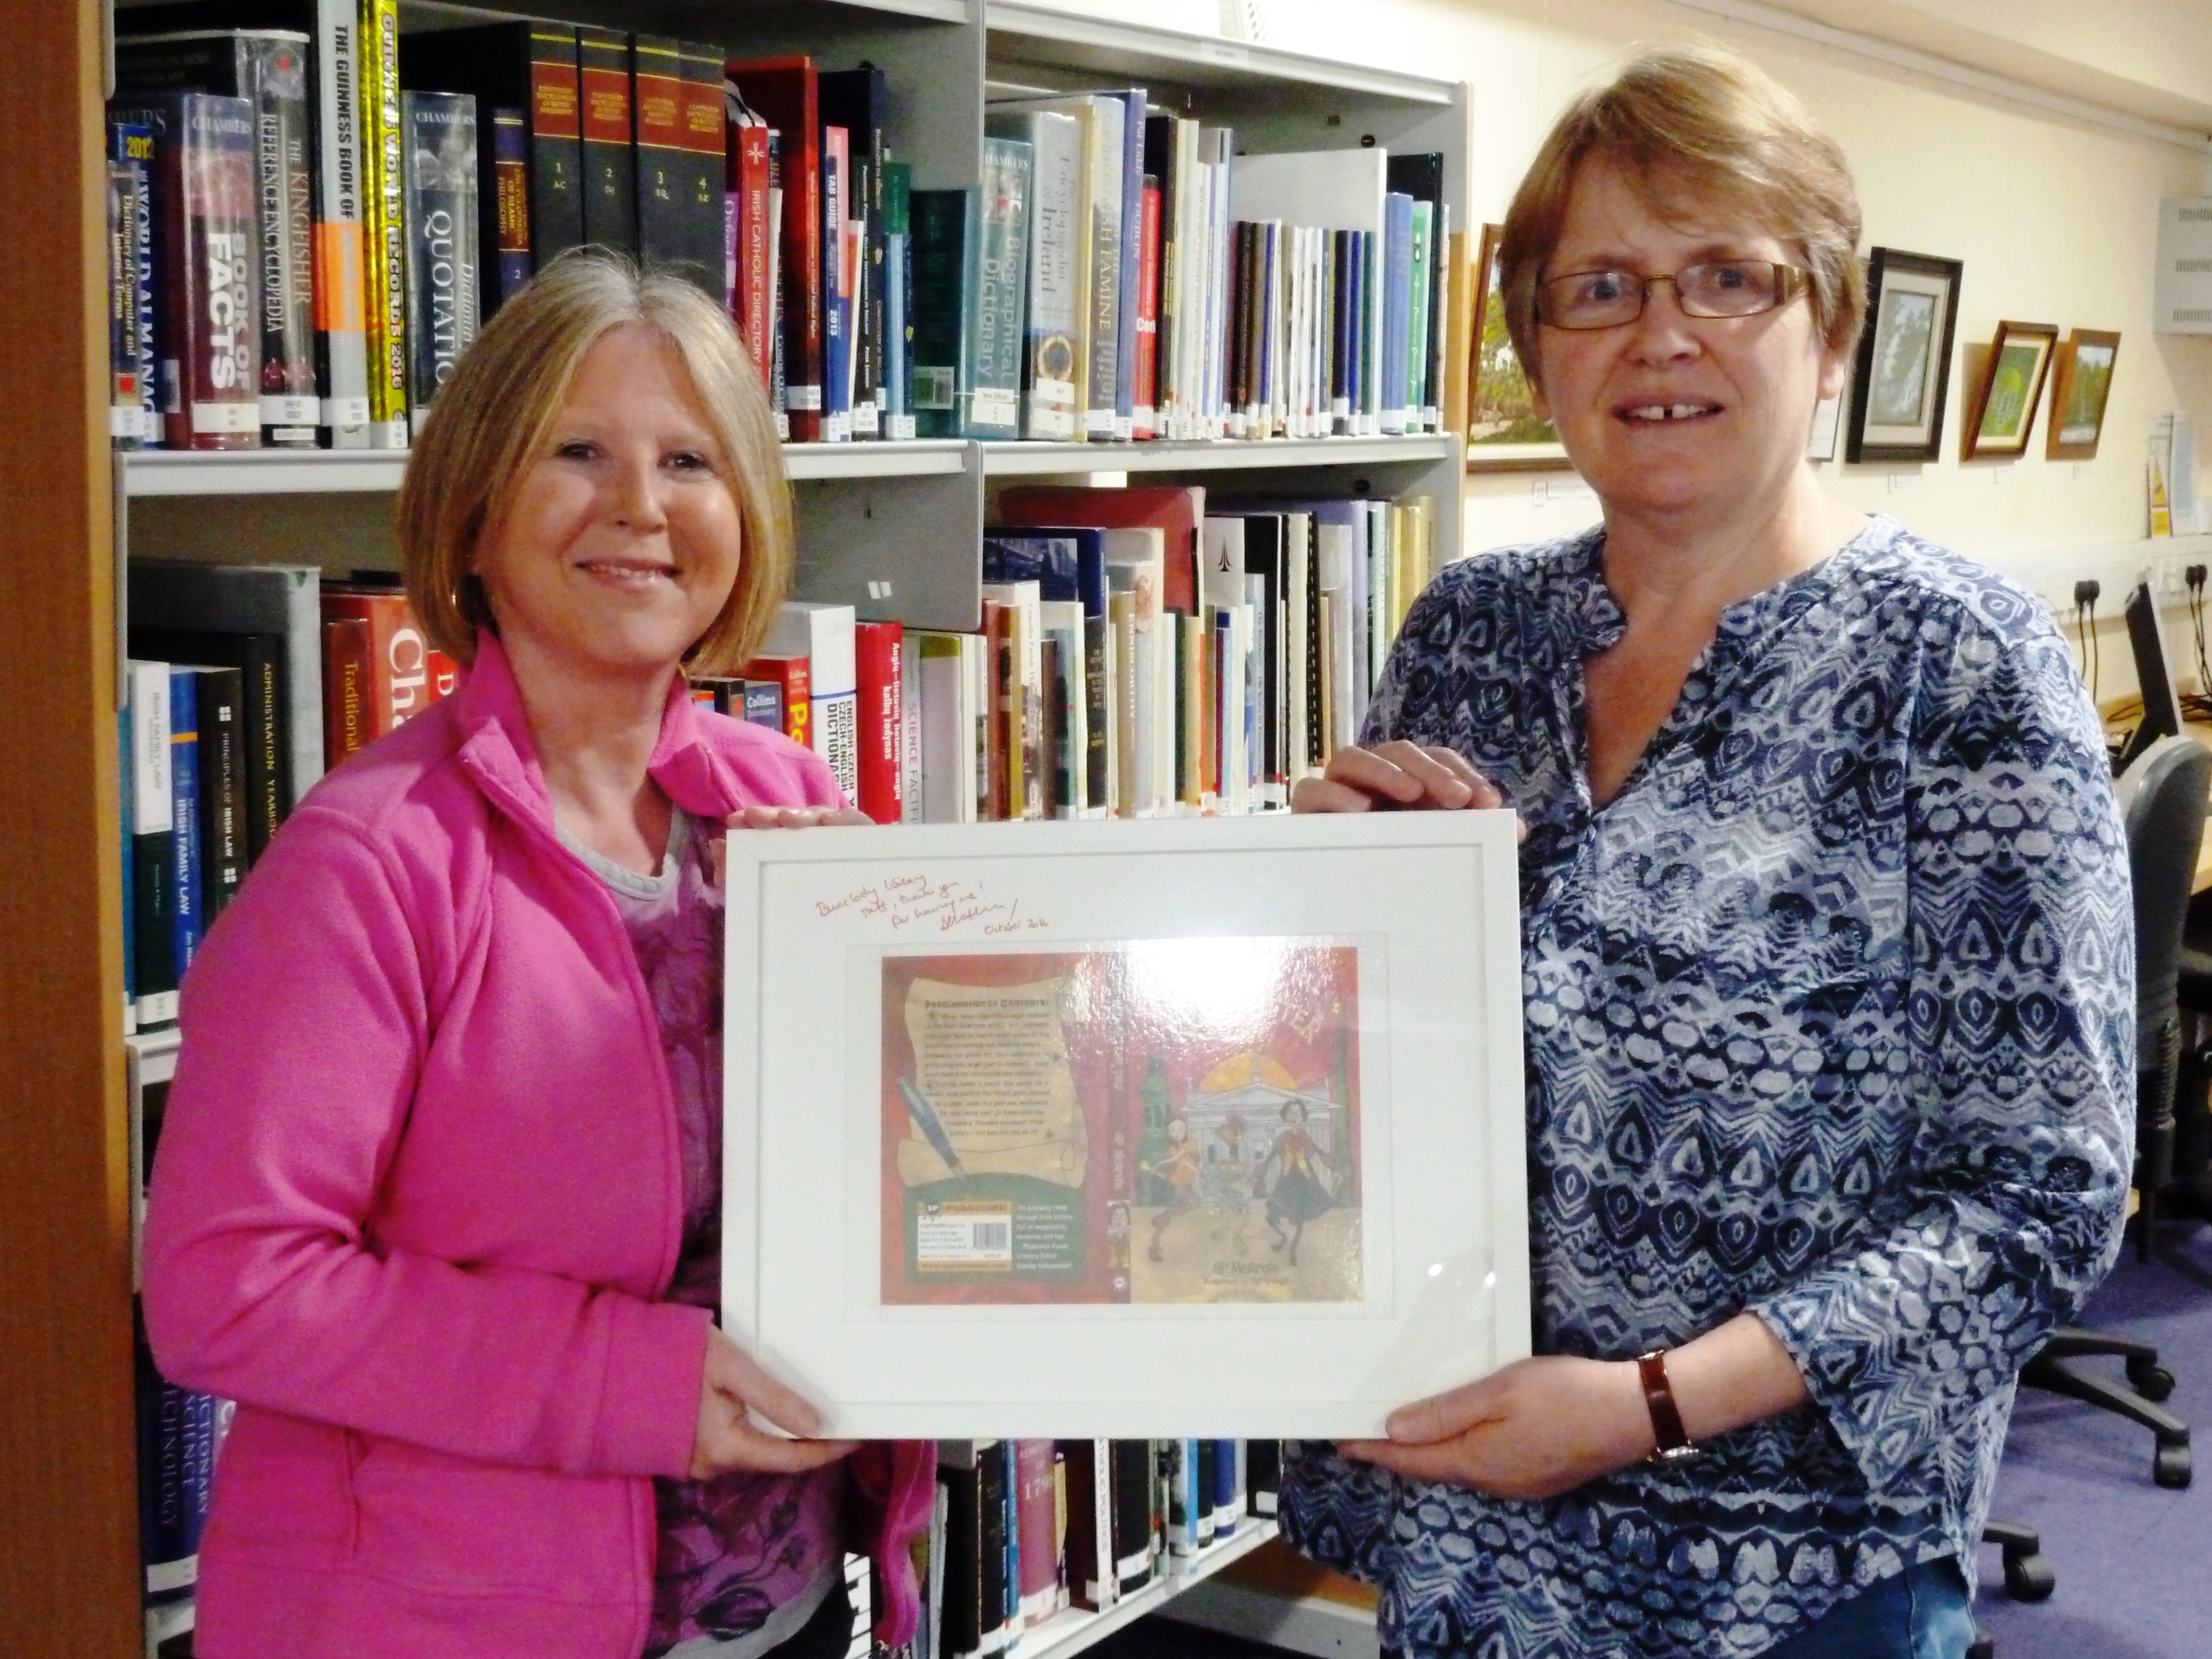 bunclody-library-wexford-childrens-book-festival-the-red-letter-day-by-sp-mcardle-oct-3-2016-presentation-to-librarian-mairead